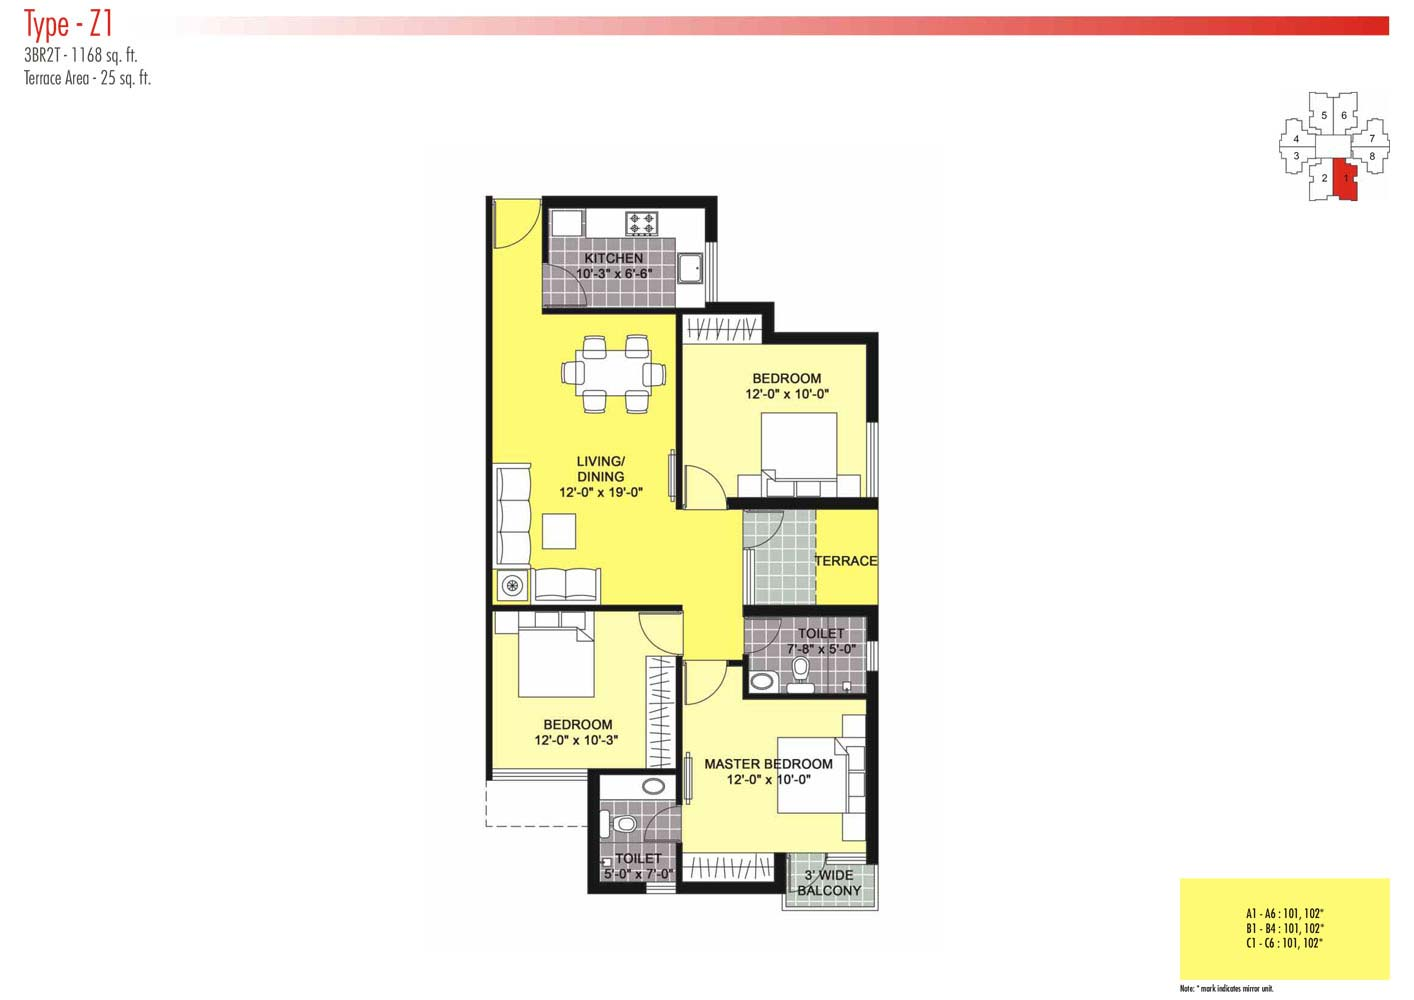 Floor Plans-3BR2T-1168 sq.ft.